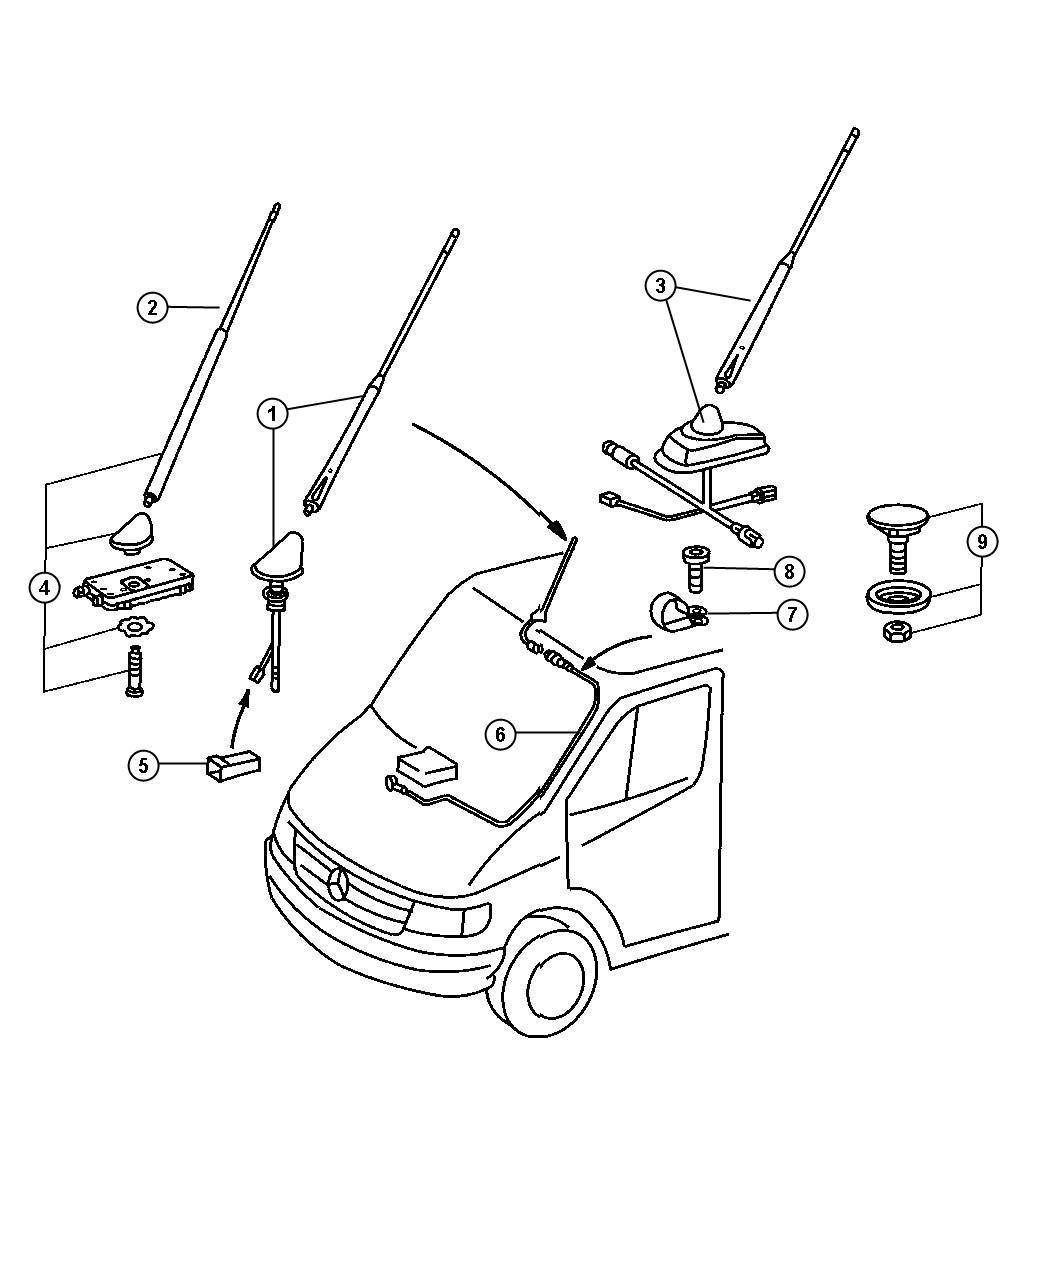 Mercedes sprinter radio antenna